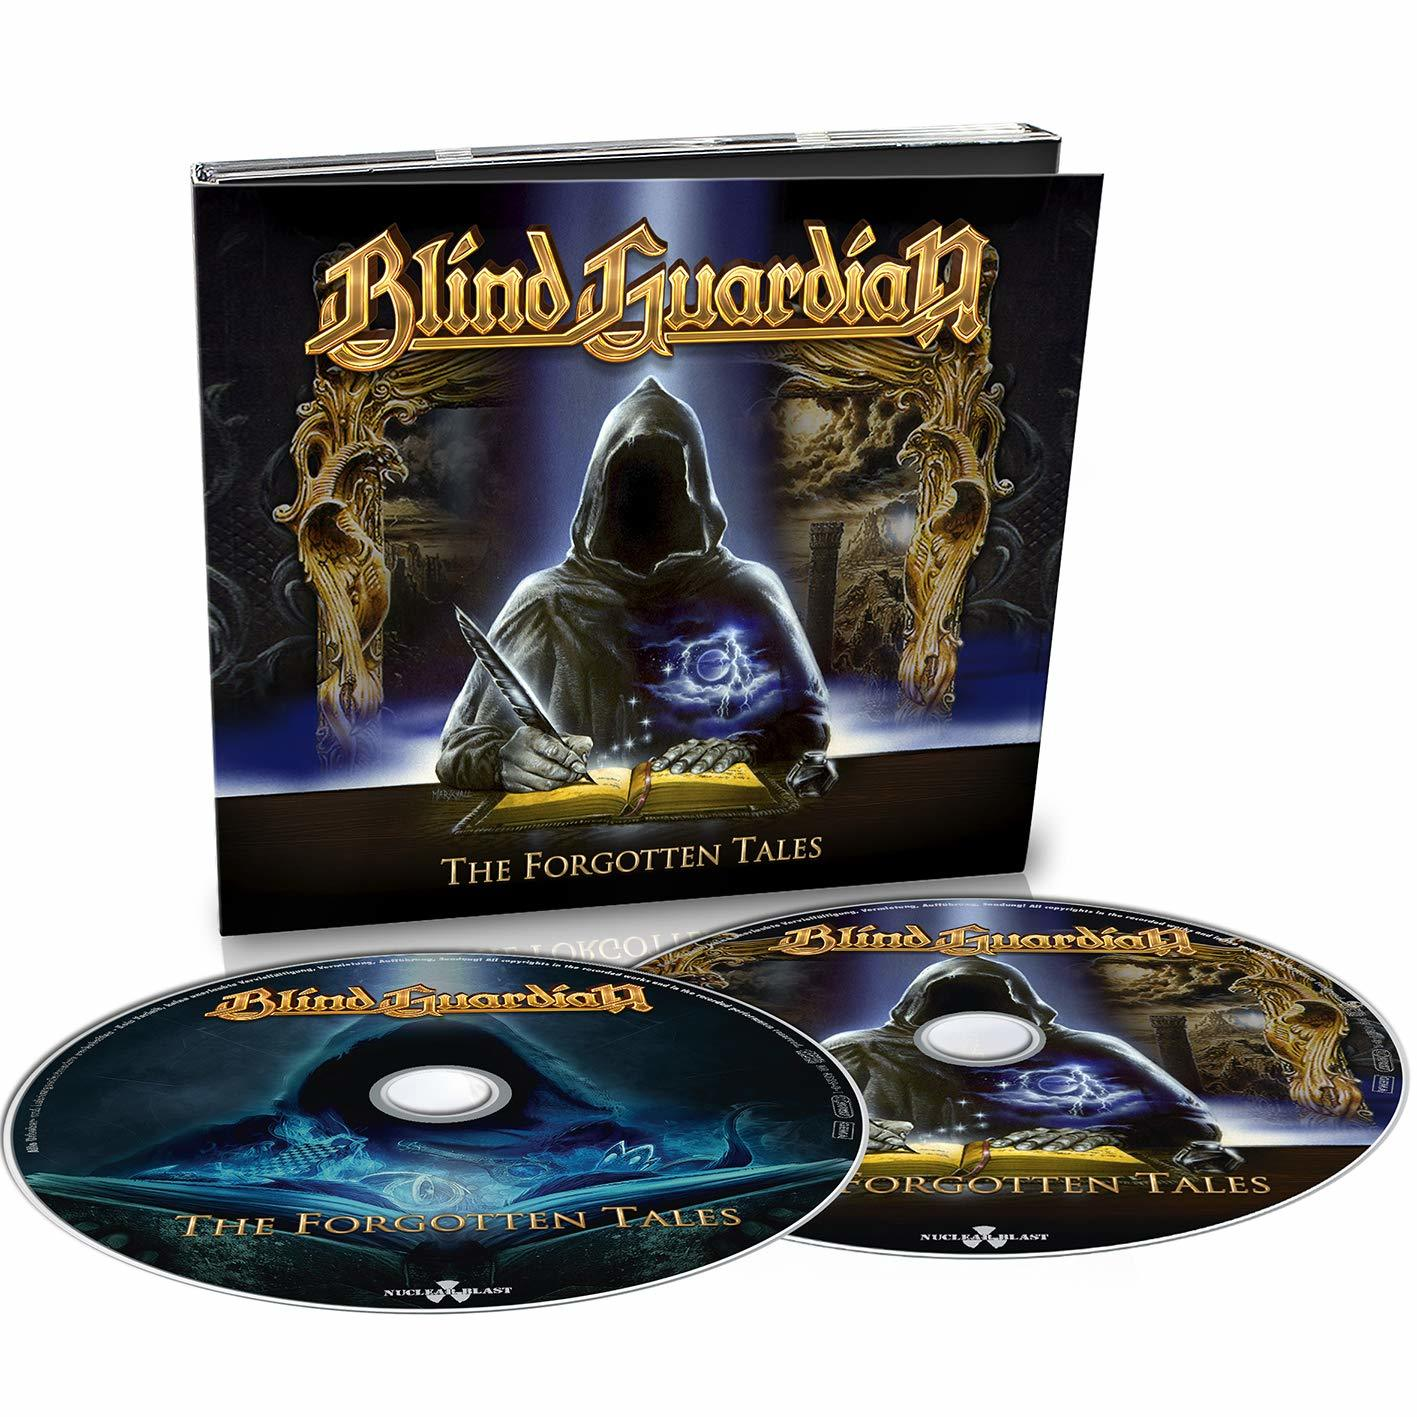 BLIND GUARDIAN The Forgotten Tales (Remastered 2012) 2CD.jpg